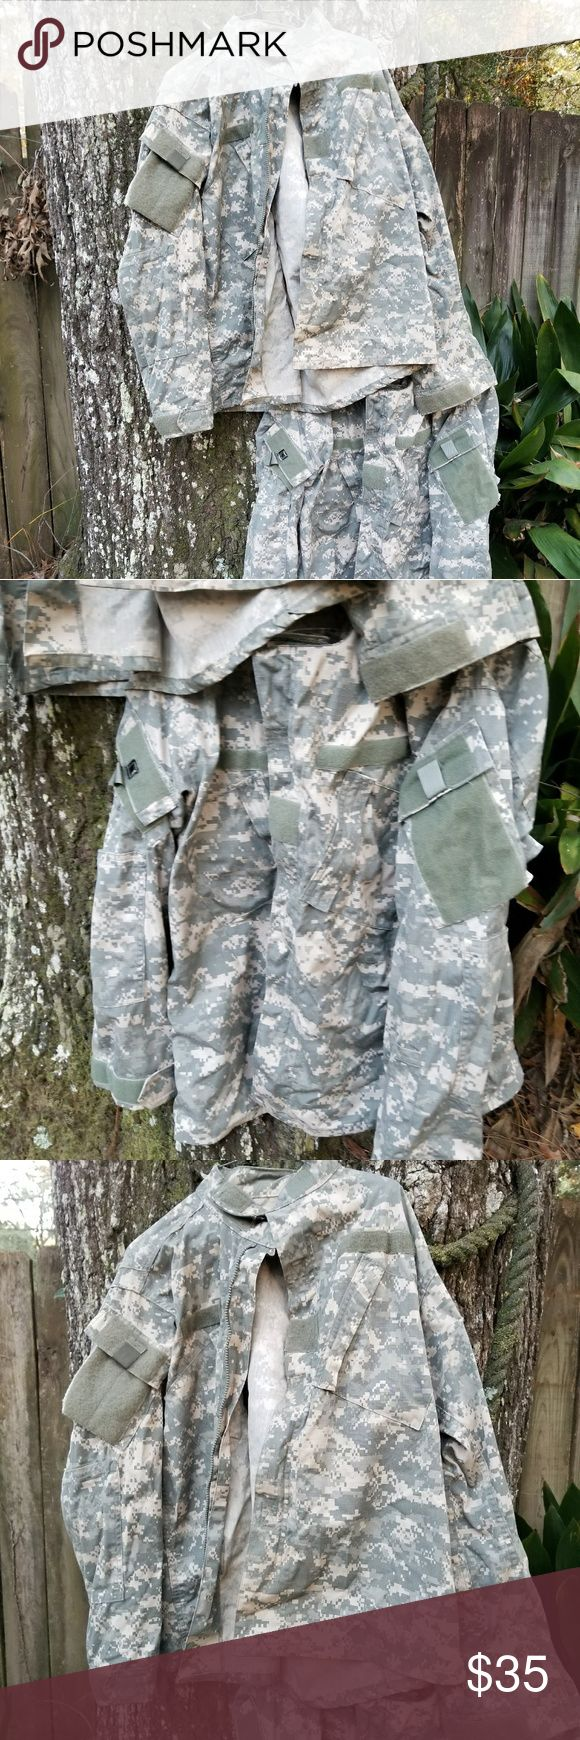 Army Combat Uniform tops Both are med reg barely used. Great for hunting work etc.. & Other Stories Jackets & Coats Lightweight & Shirt Jackets